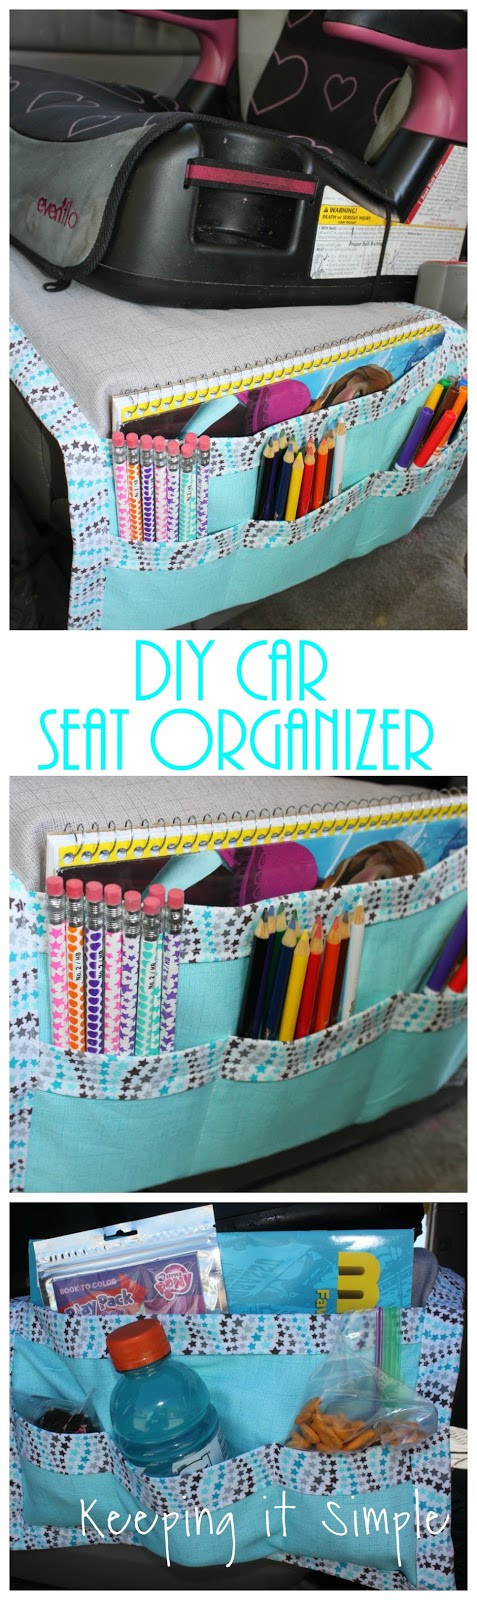 Best ideas about DIY Car Organizers . Save or Pin DIY Car Seat Organizer for Kids Snacks and Coloring Now.